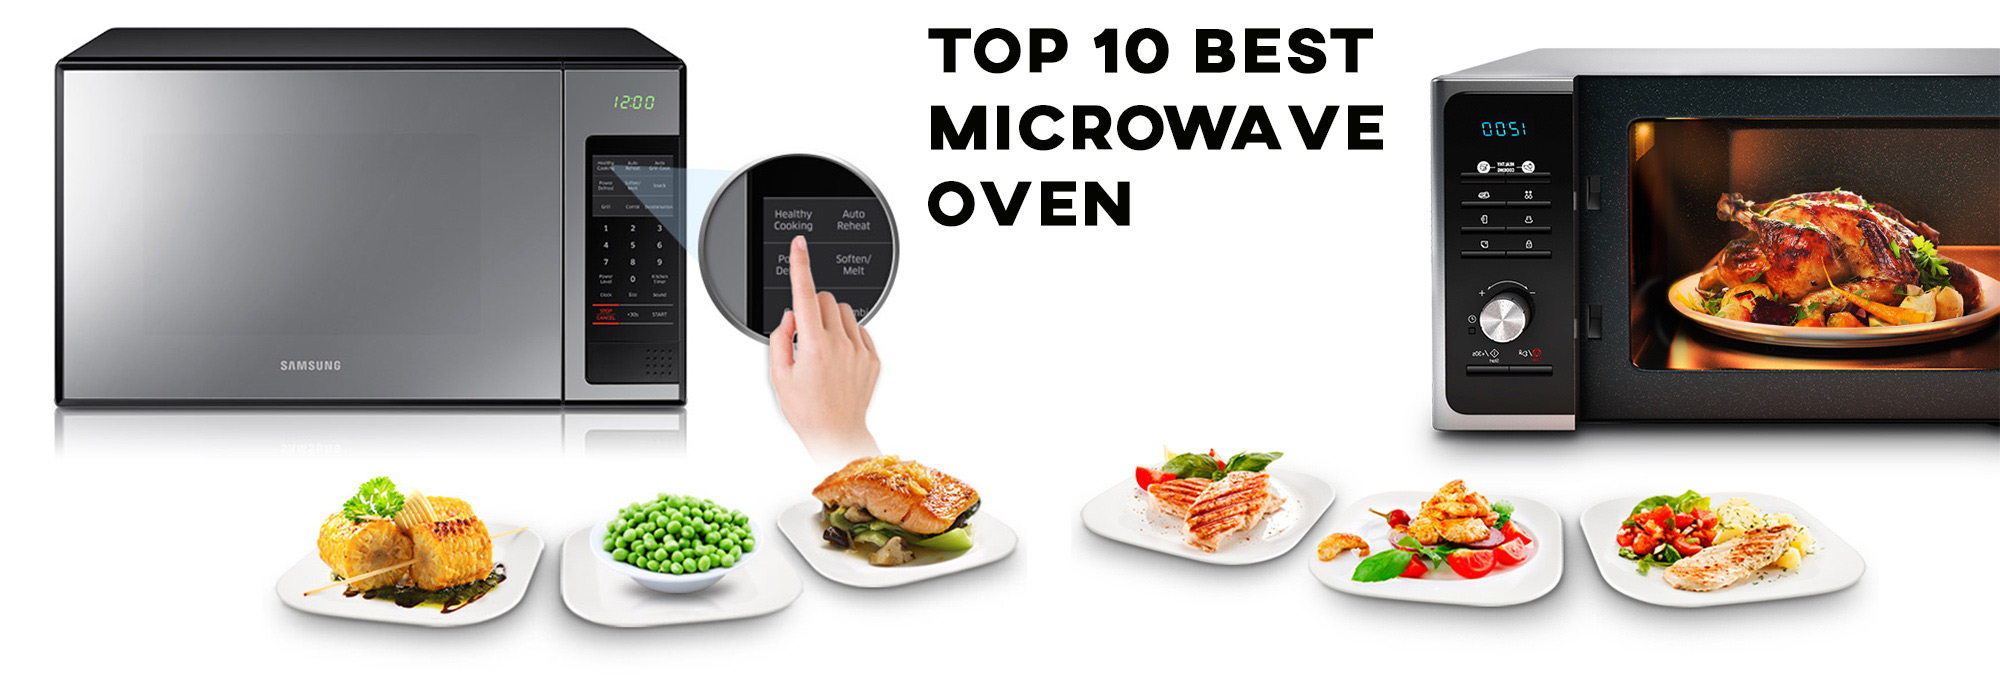 Best Microwave Oven And Countertop